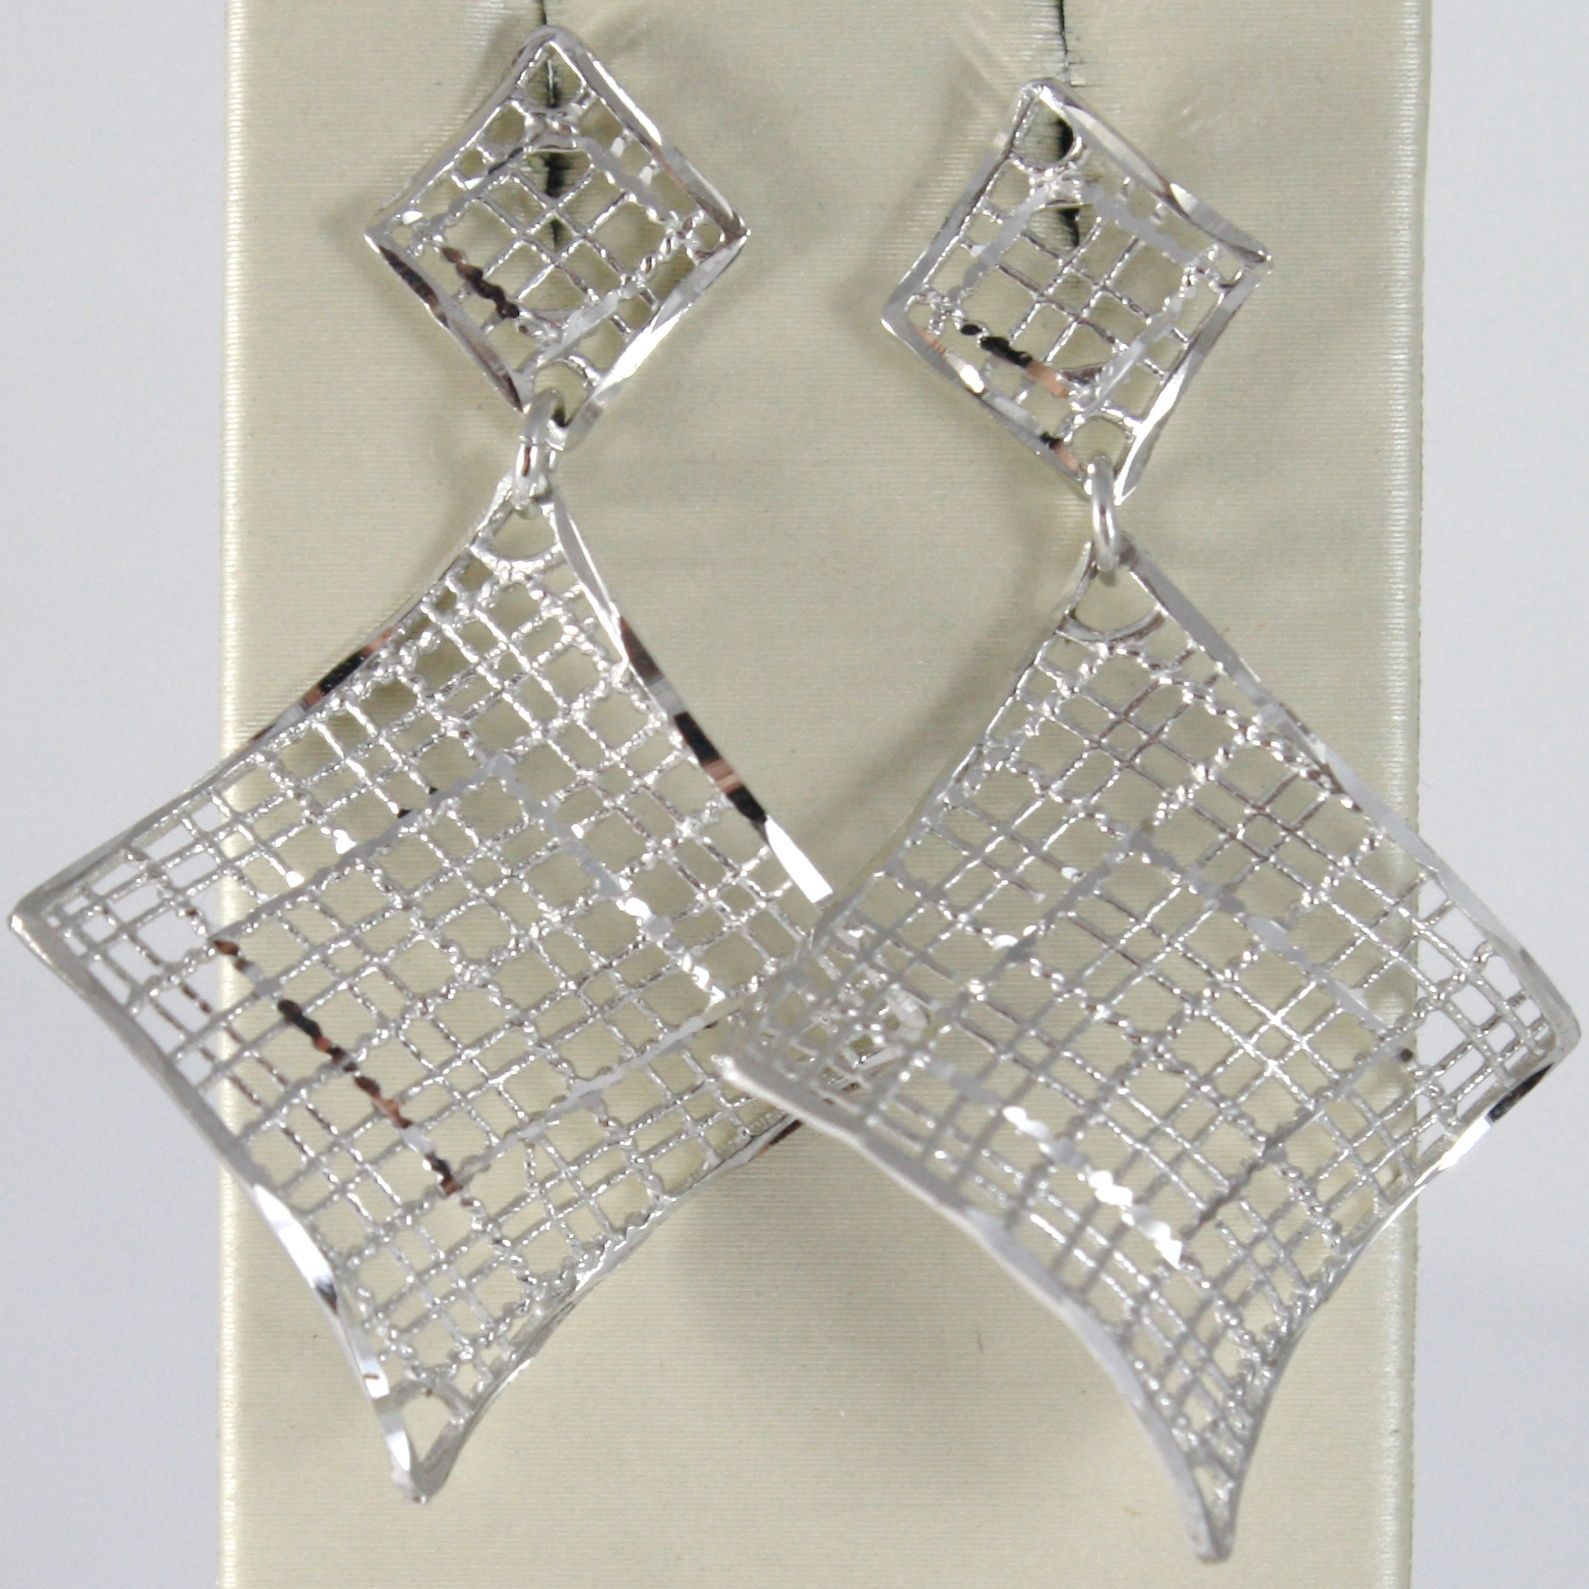 WHITE GOLD EARRINGS 750 18K HANGING 4.3 CM DOUBLE RHOMBUS WAVY AND WORKED